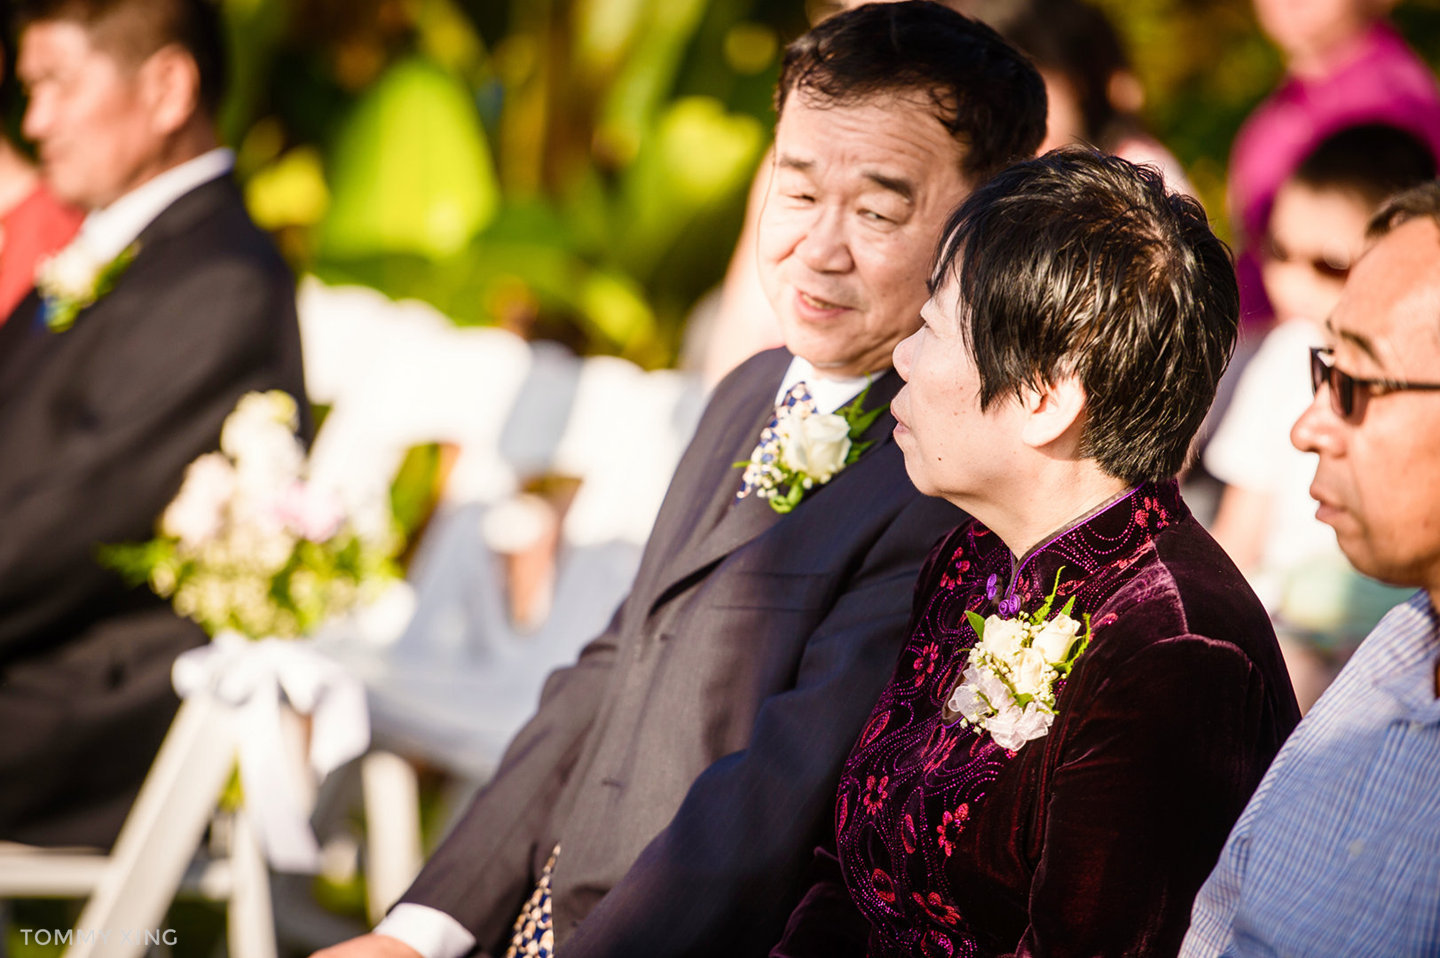 Paradise Point Resort Wedding Xiaolu & Bin San Diego 圣地亚哥婚礼摄影跟拍 Tommy Xing Photography 洛杉矶婚礼婚纱照摄影师 127.jpg